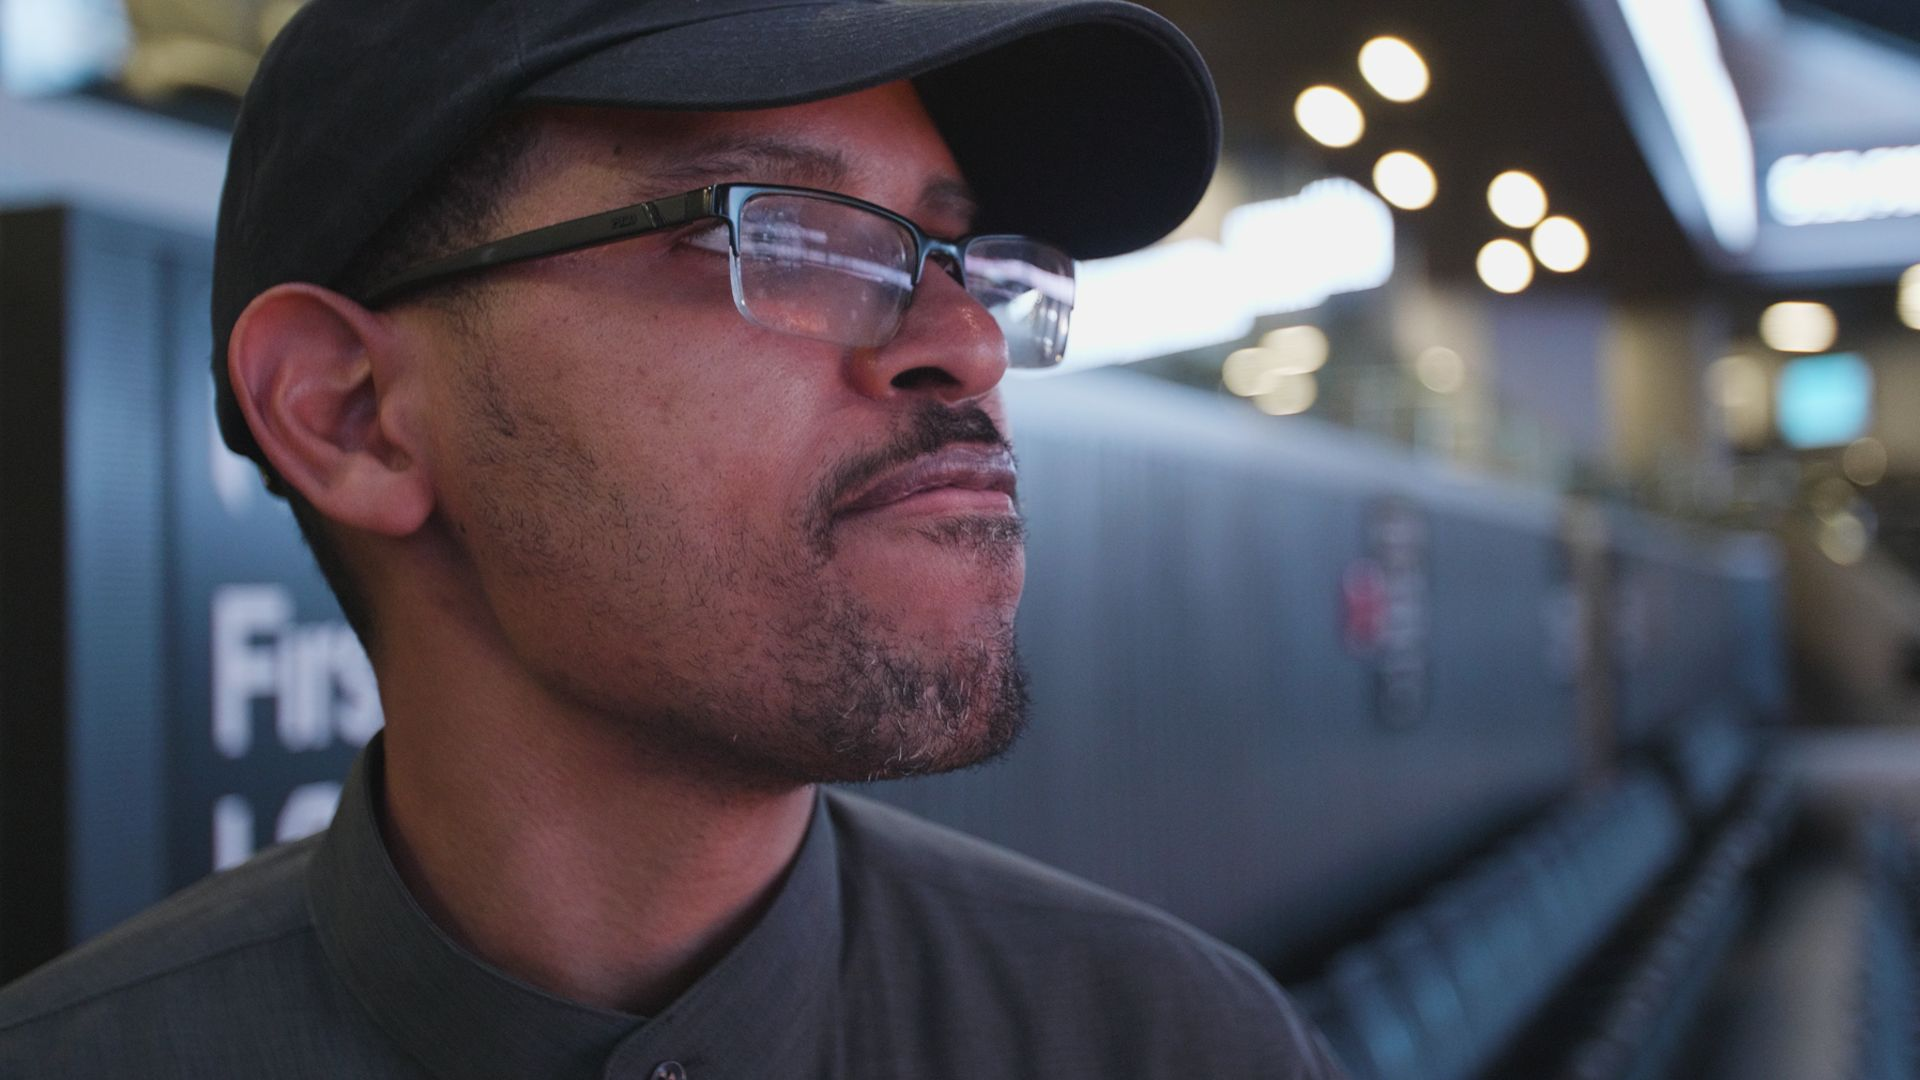 Miguel Mondesir, one of the people with I/DD who found employment at Barclays Center through AHRC.